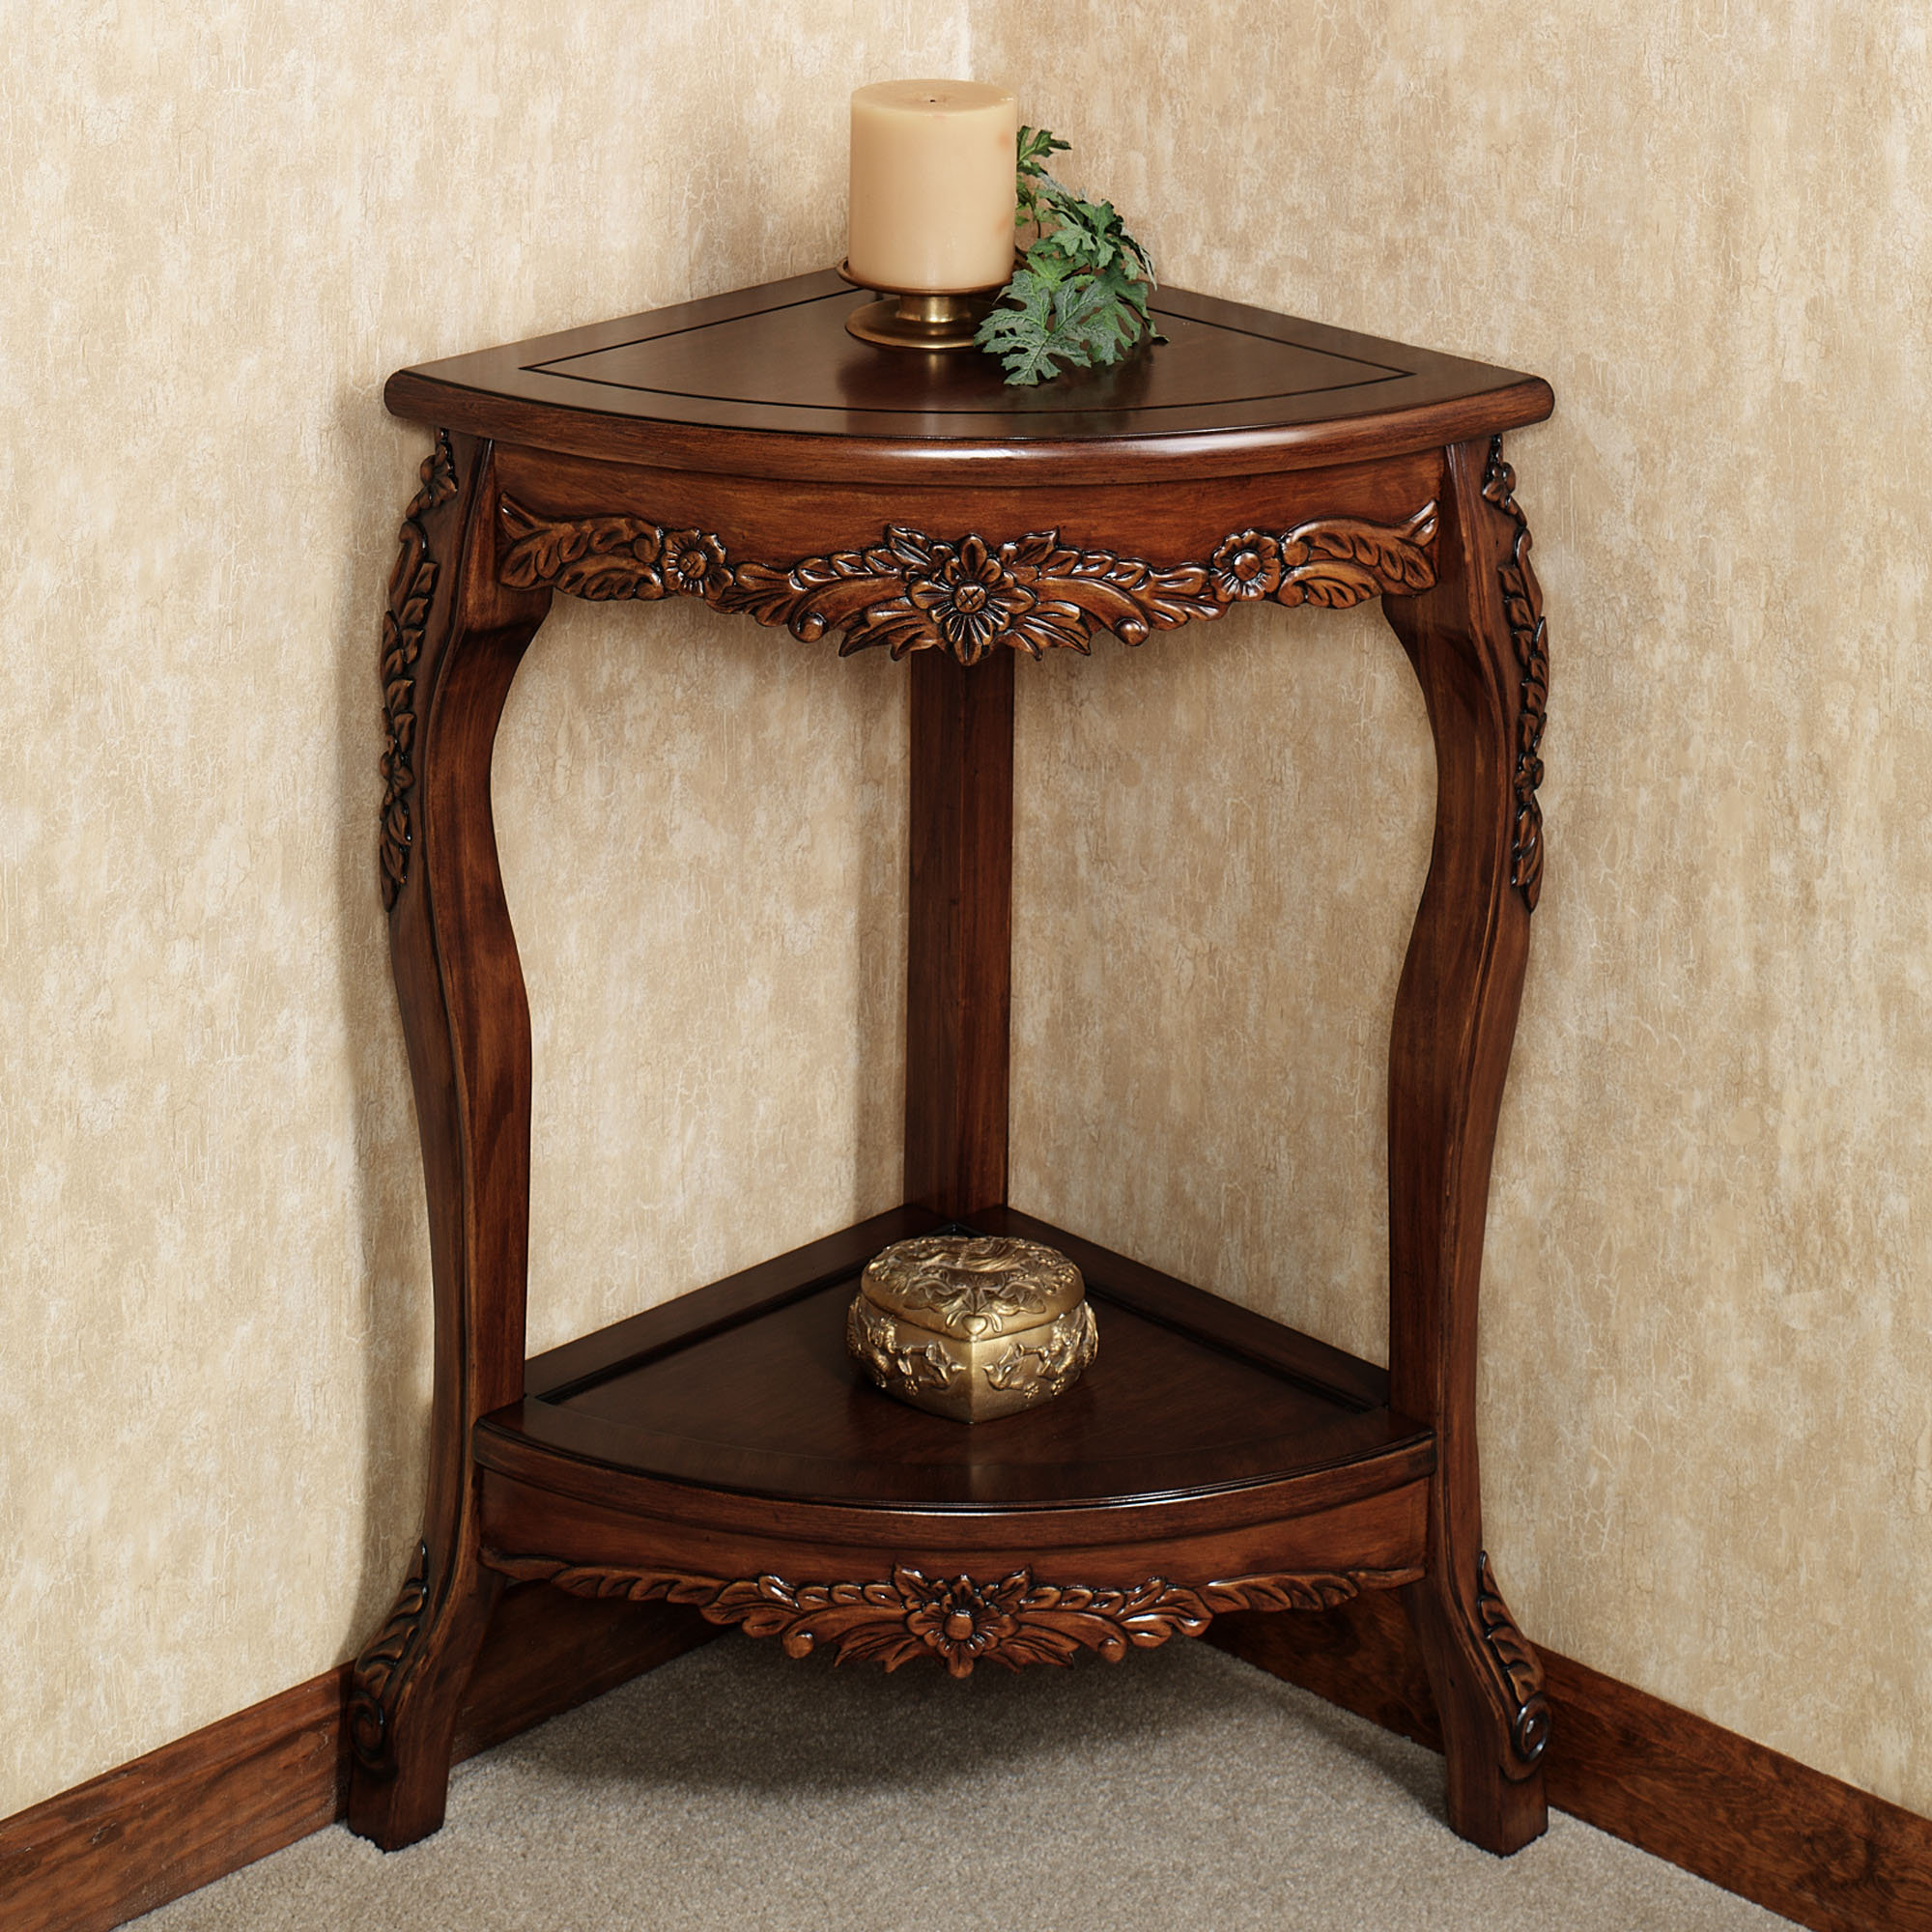 nice and clean look corner accent table the home redesign classy with storage narrow drawer target threshold nightstand tiffany wall sconce lamps shades bedroom furniture lane